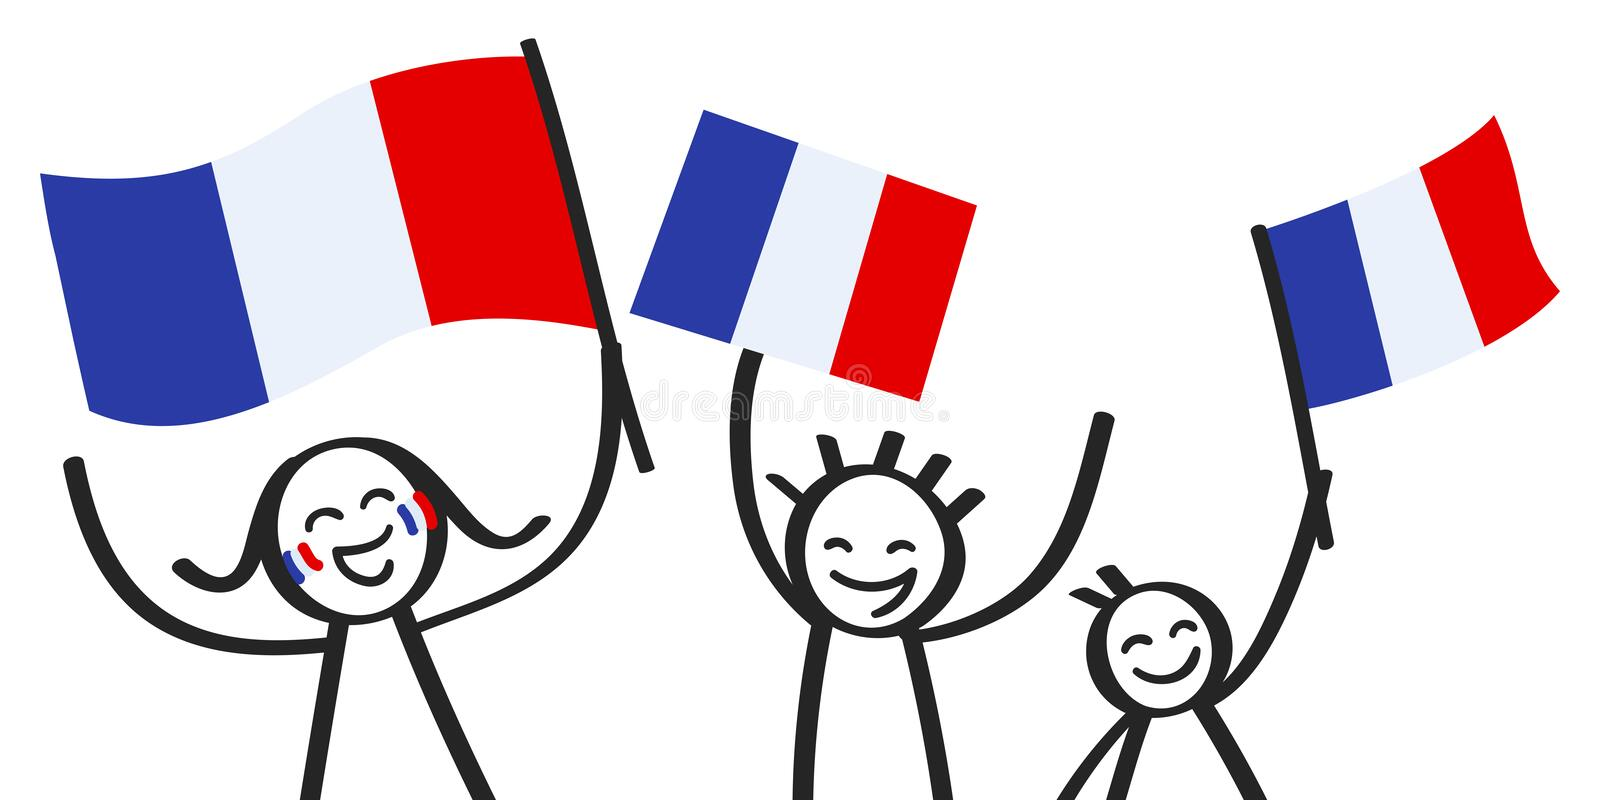 Cheering group of happy stick figures with French national flags, France supporters smiling and waving tricolor flags vector illustration